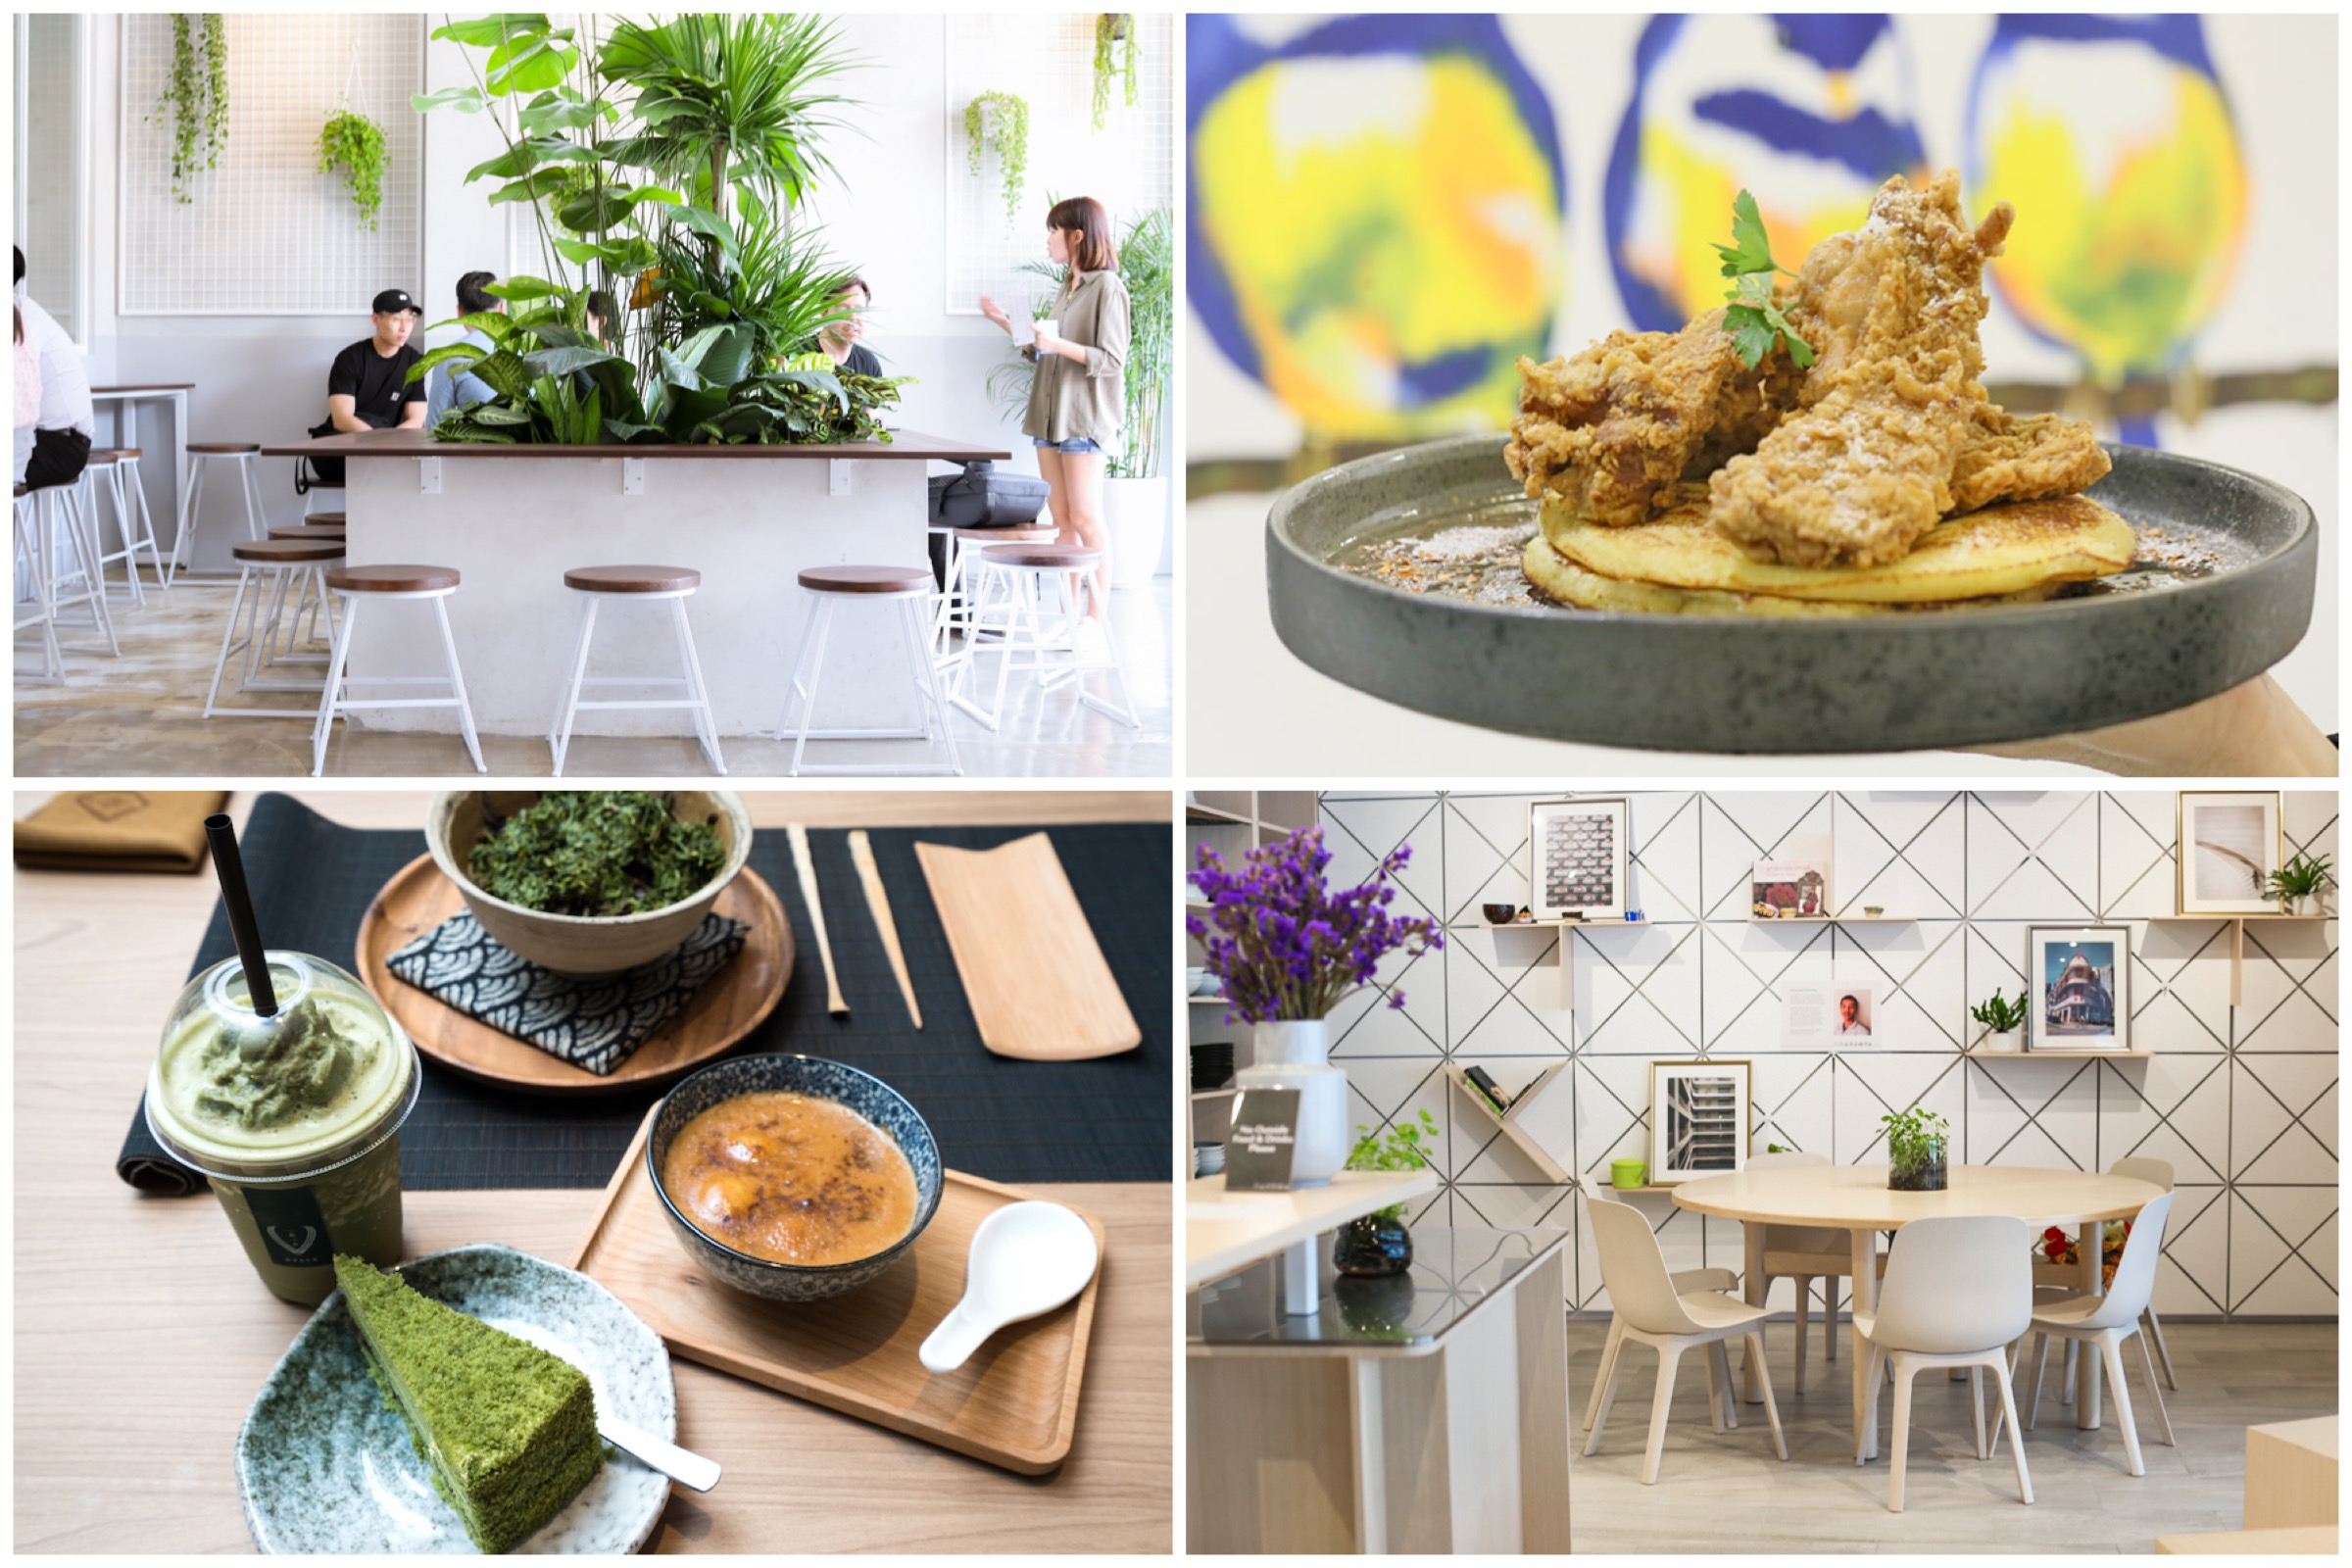 10 Instagrammable NEW Cafes In Singapore 2018 - The Chio, Unique, And Under-The-Radar